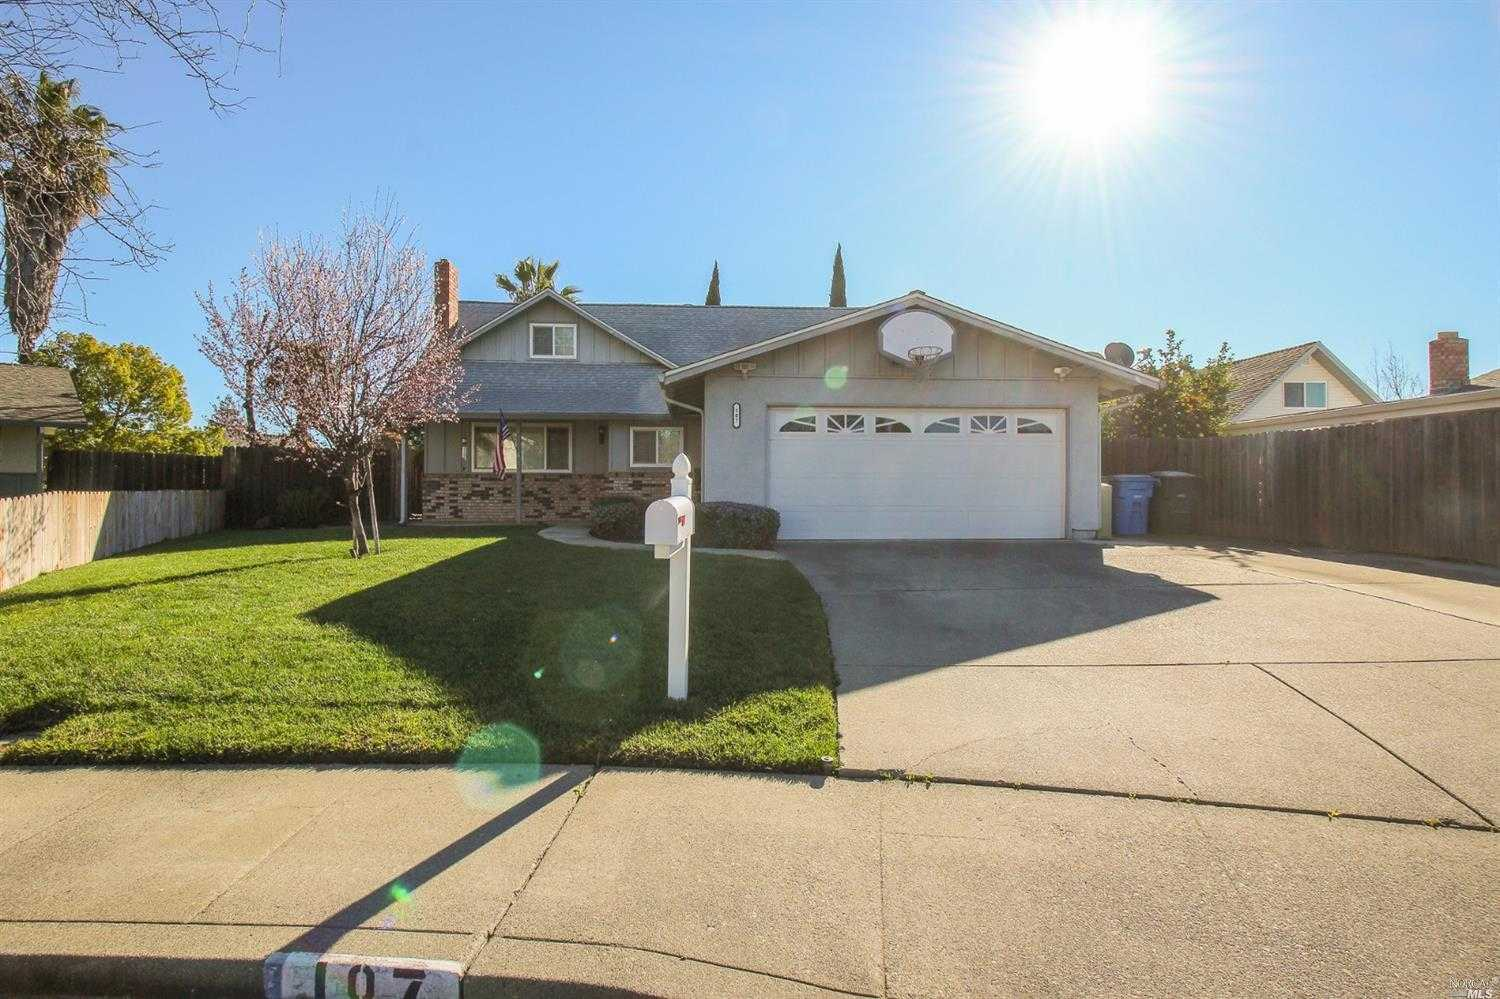 $439,000 - 3Br/2Ba -  for Sale in Vacaville